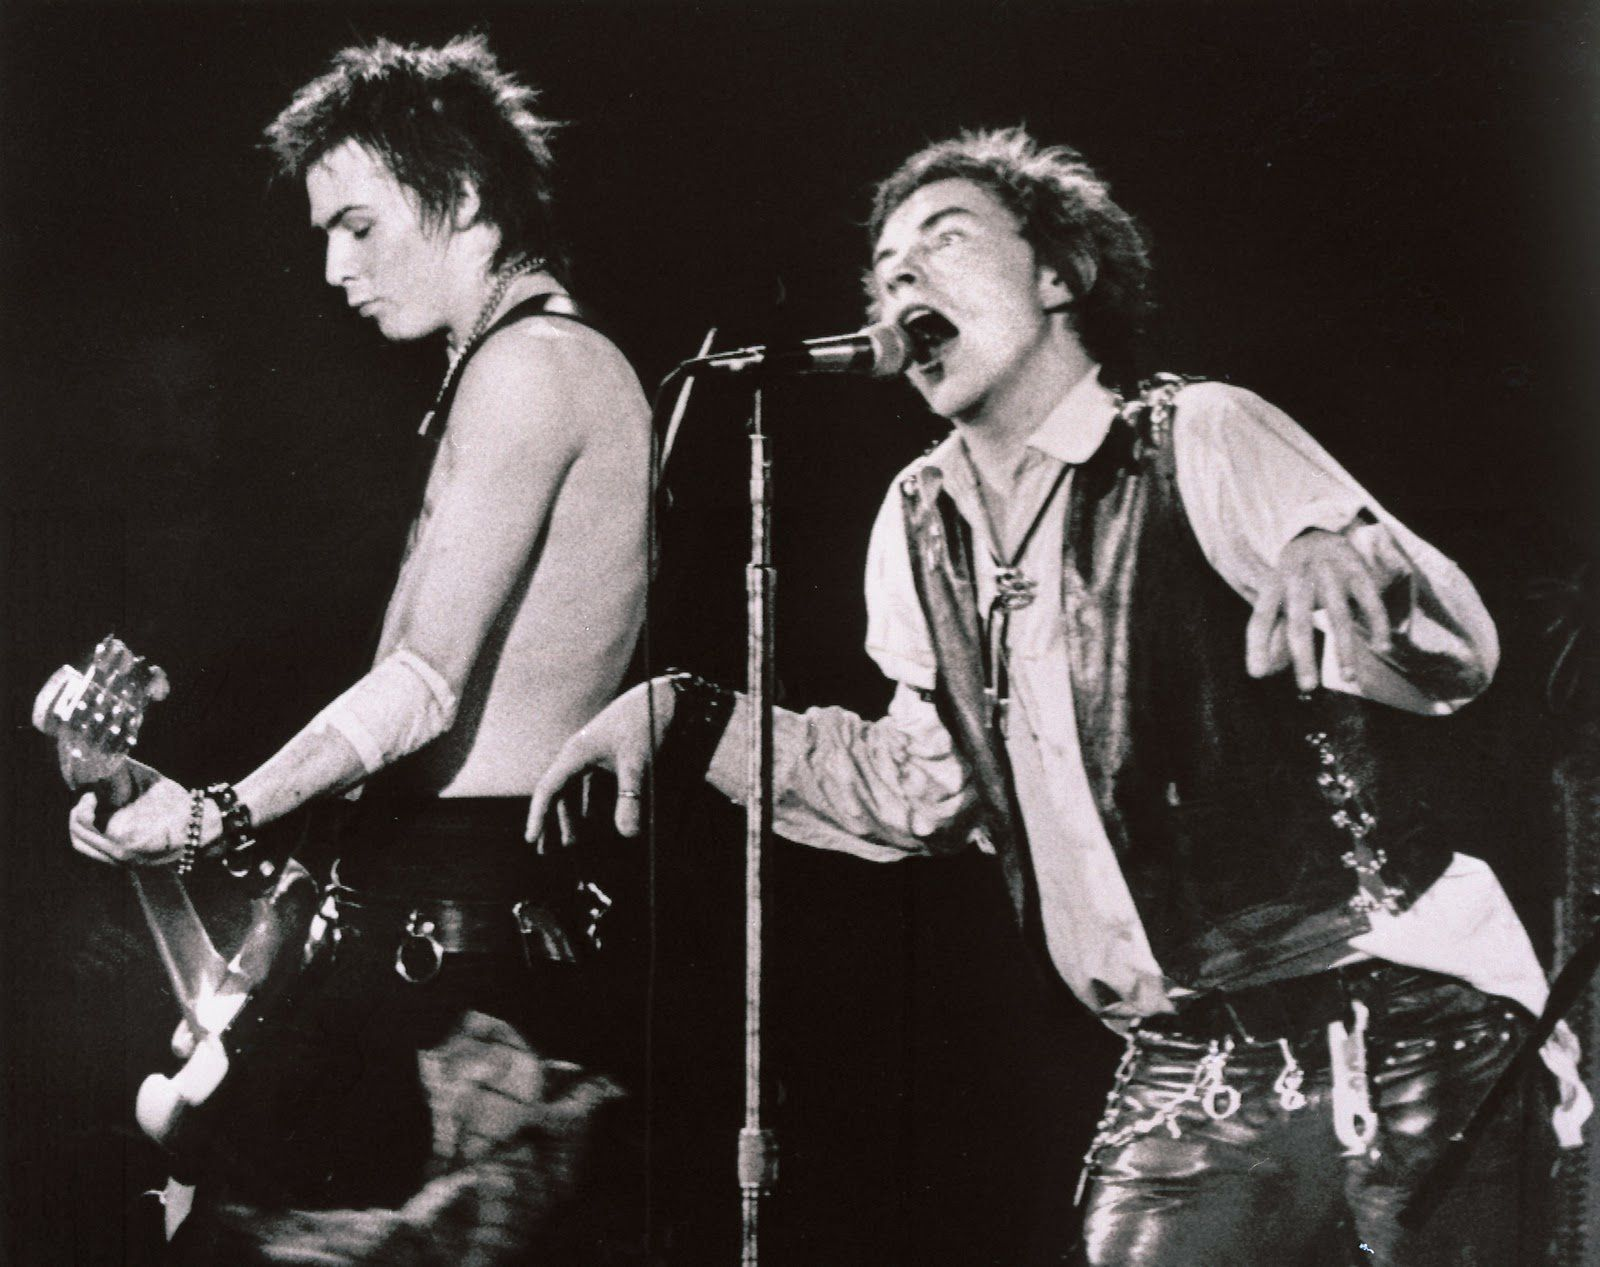 Johnny Rotten and Sid Vocious (Sex Pistols) on stage (1978)